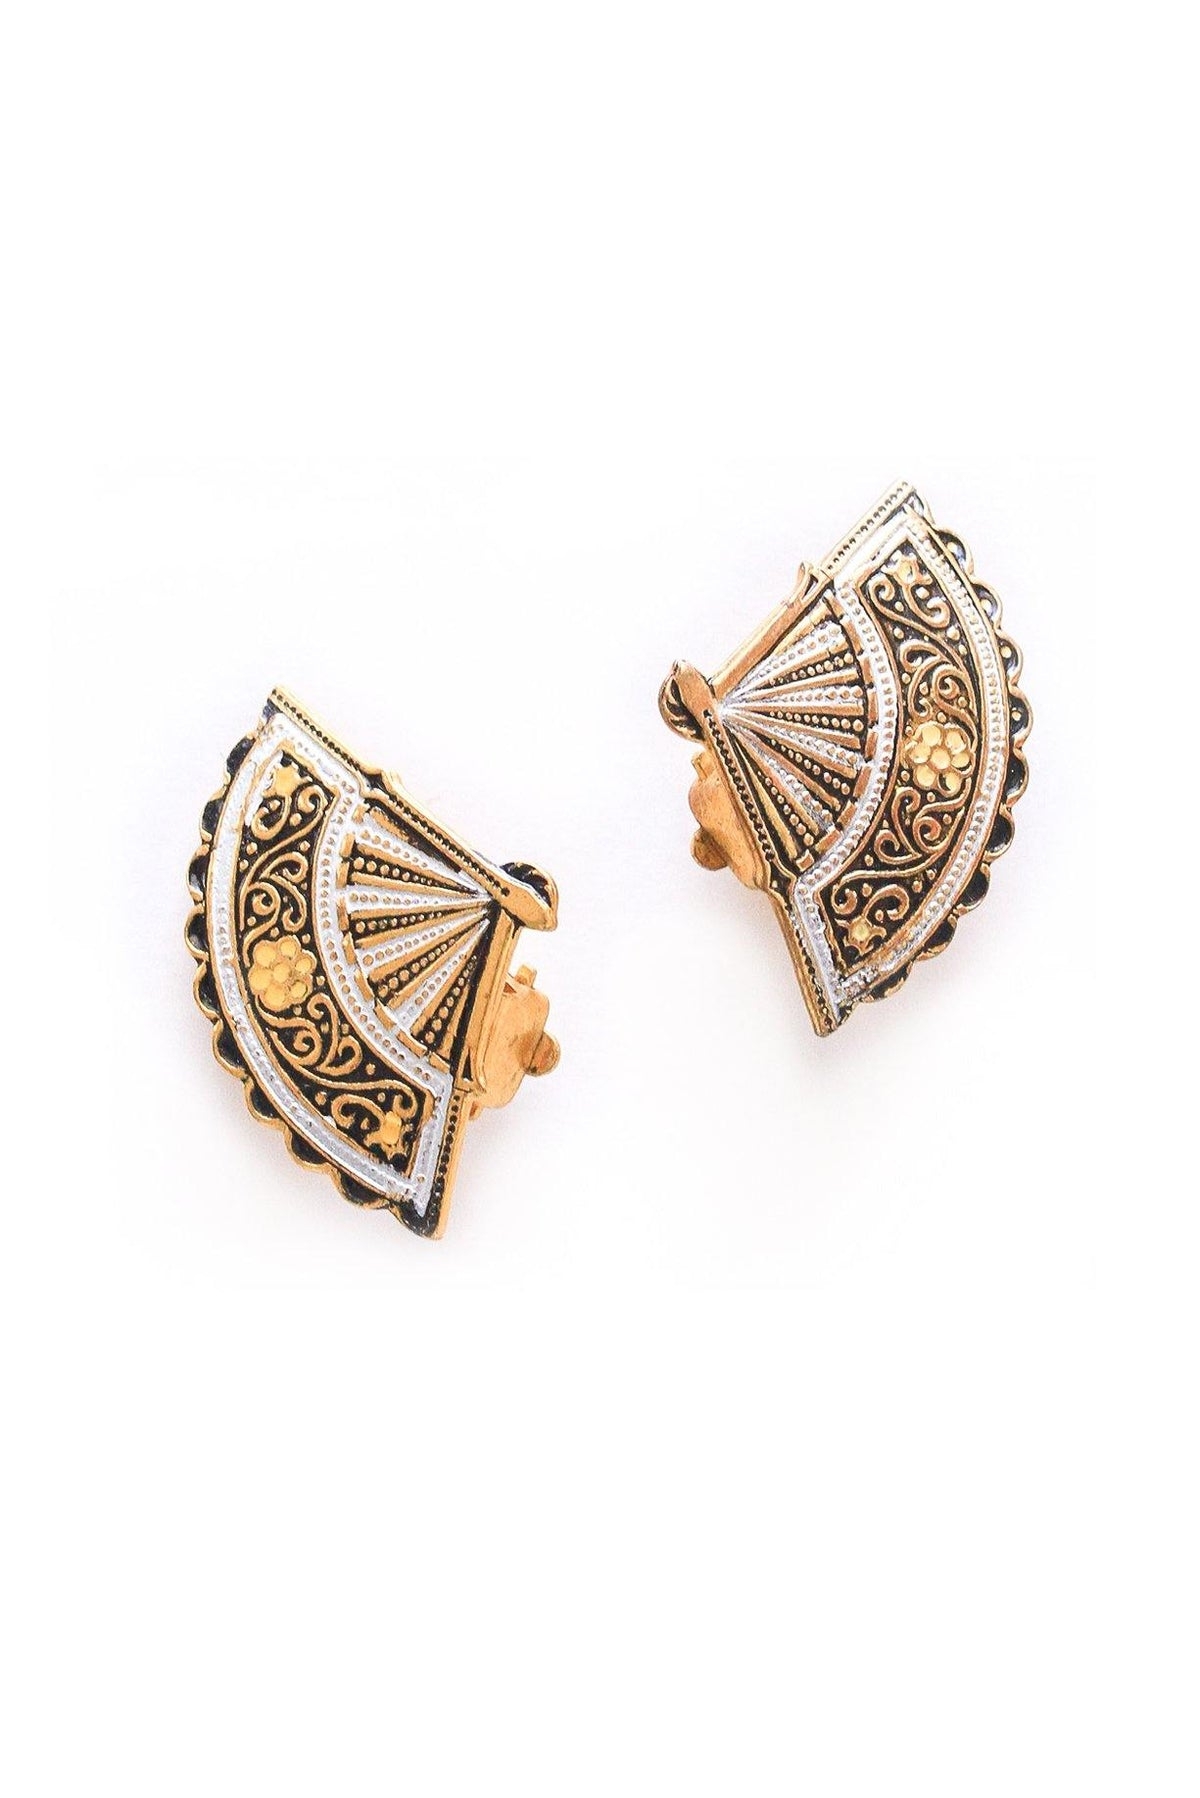 Vintage Spanish damascene fanned earrings from Sweet & Spark.